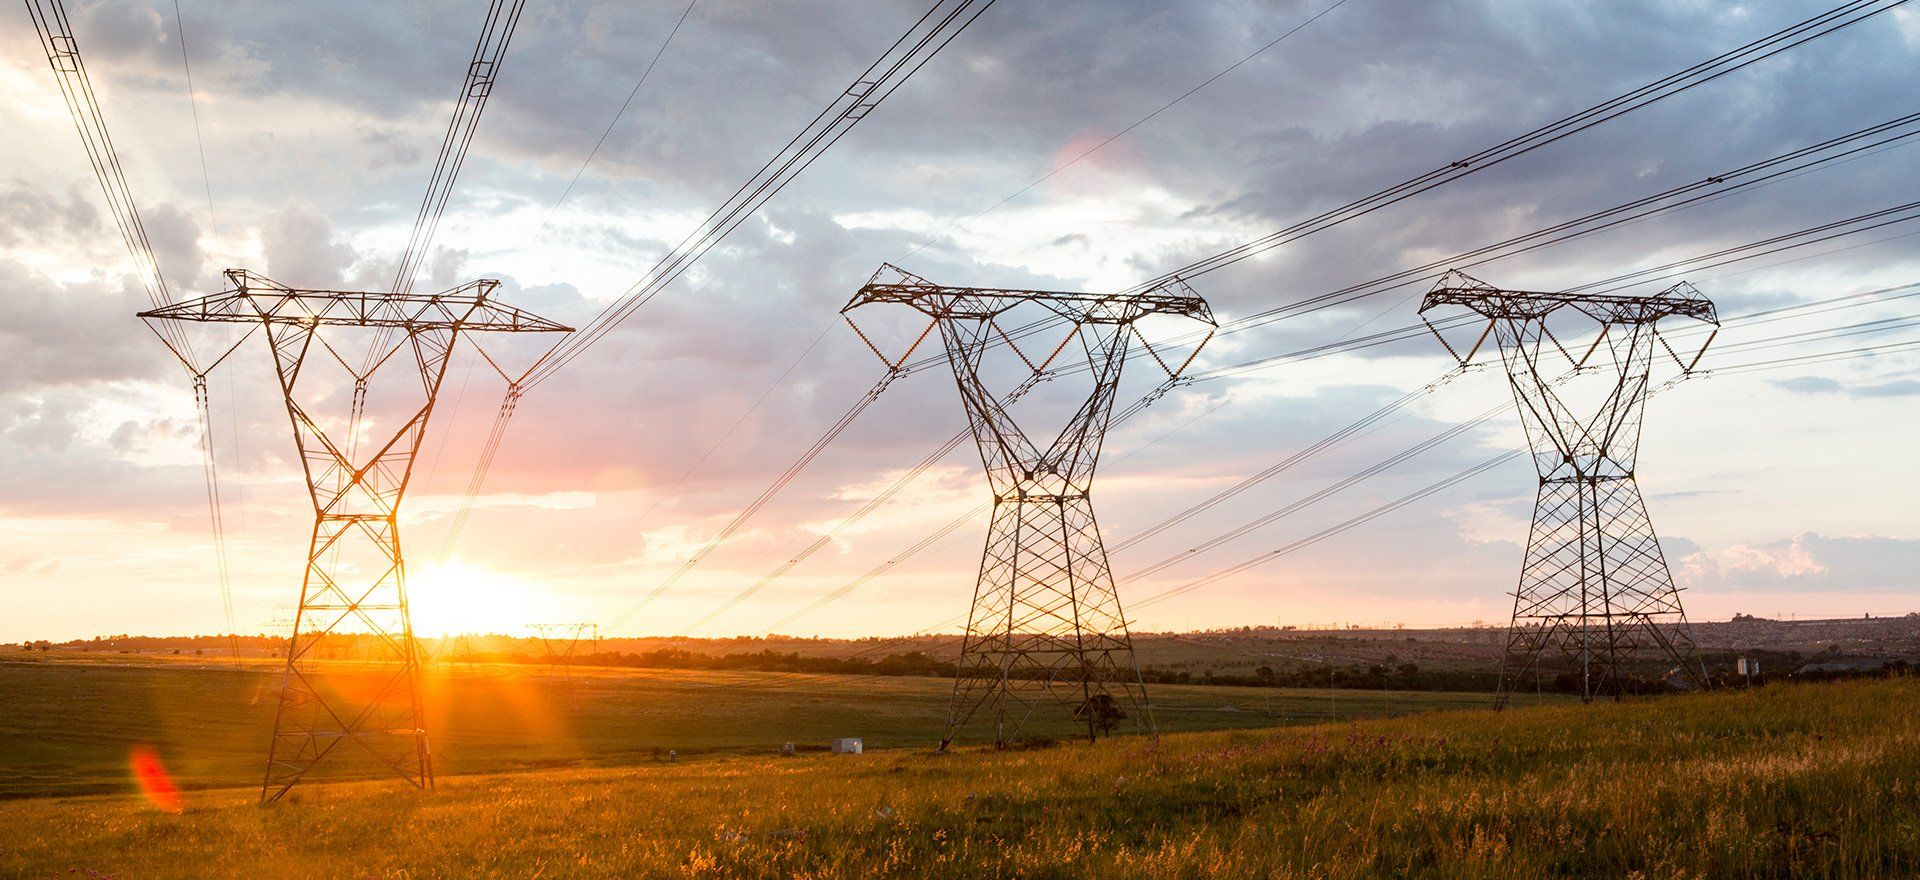 Powerlines in the sunset